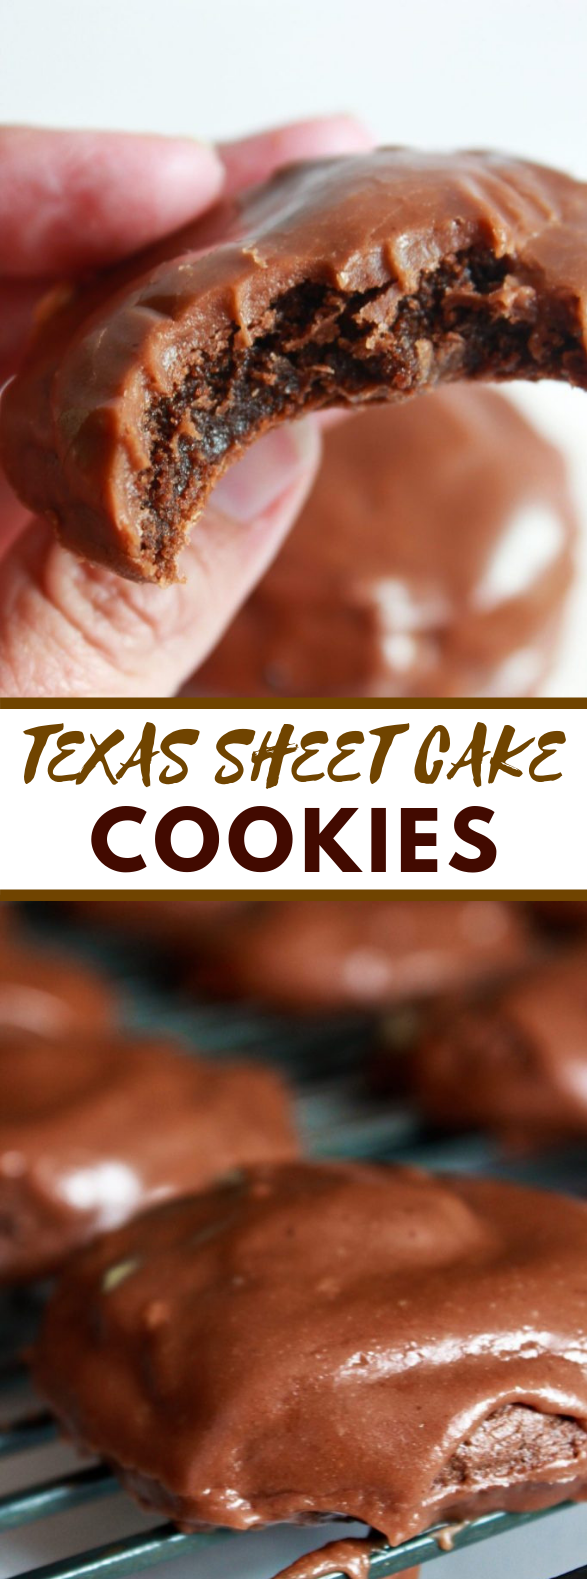 Texas Sheet Cake Cookies #desserts #chocolate